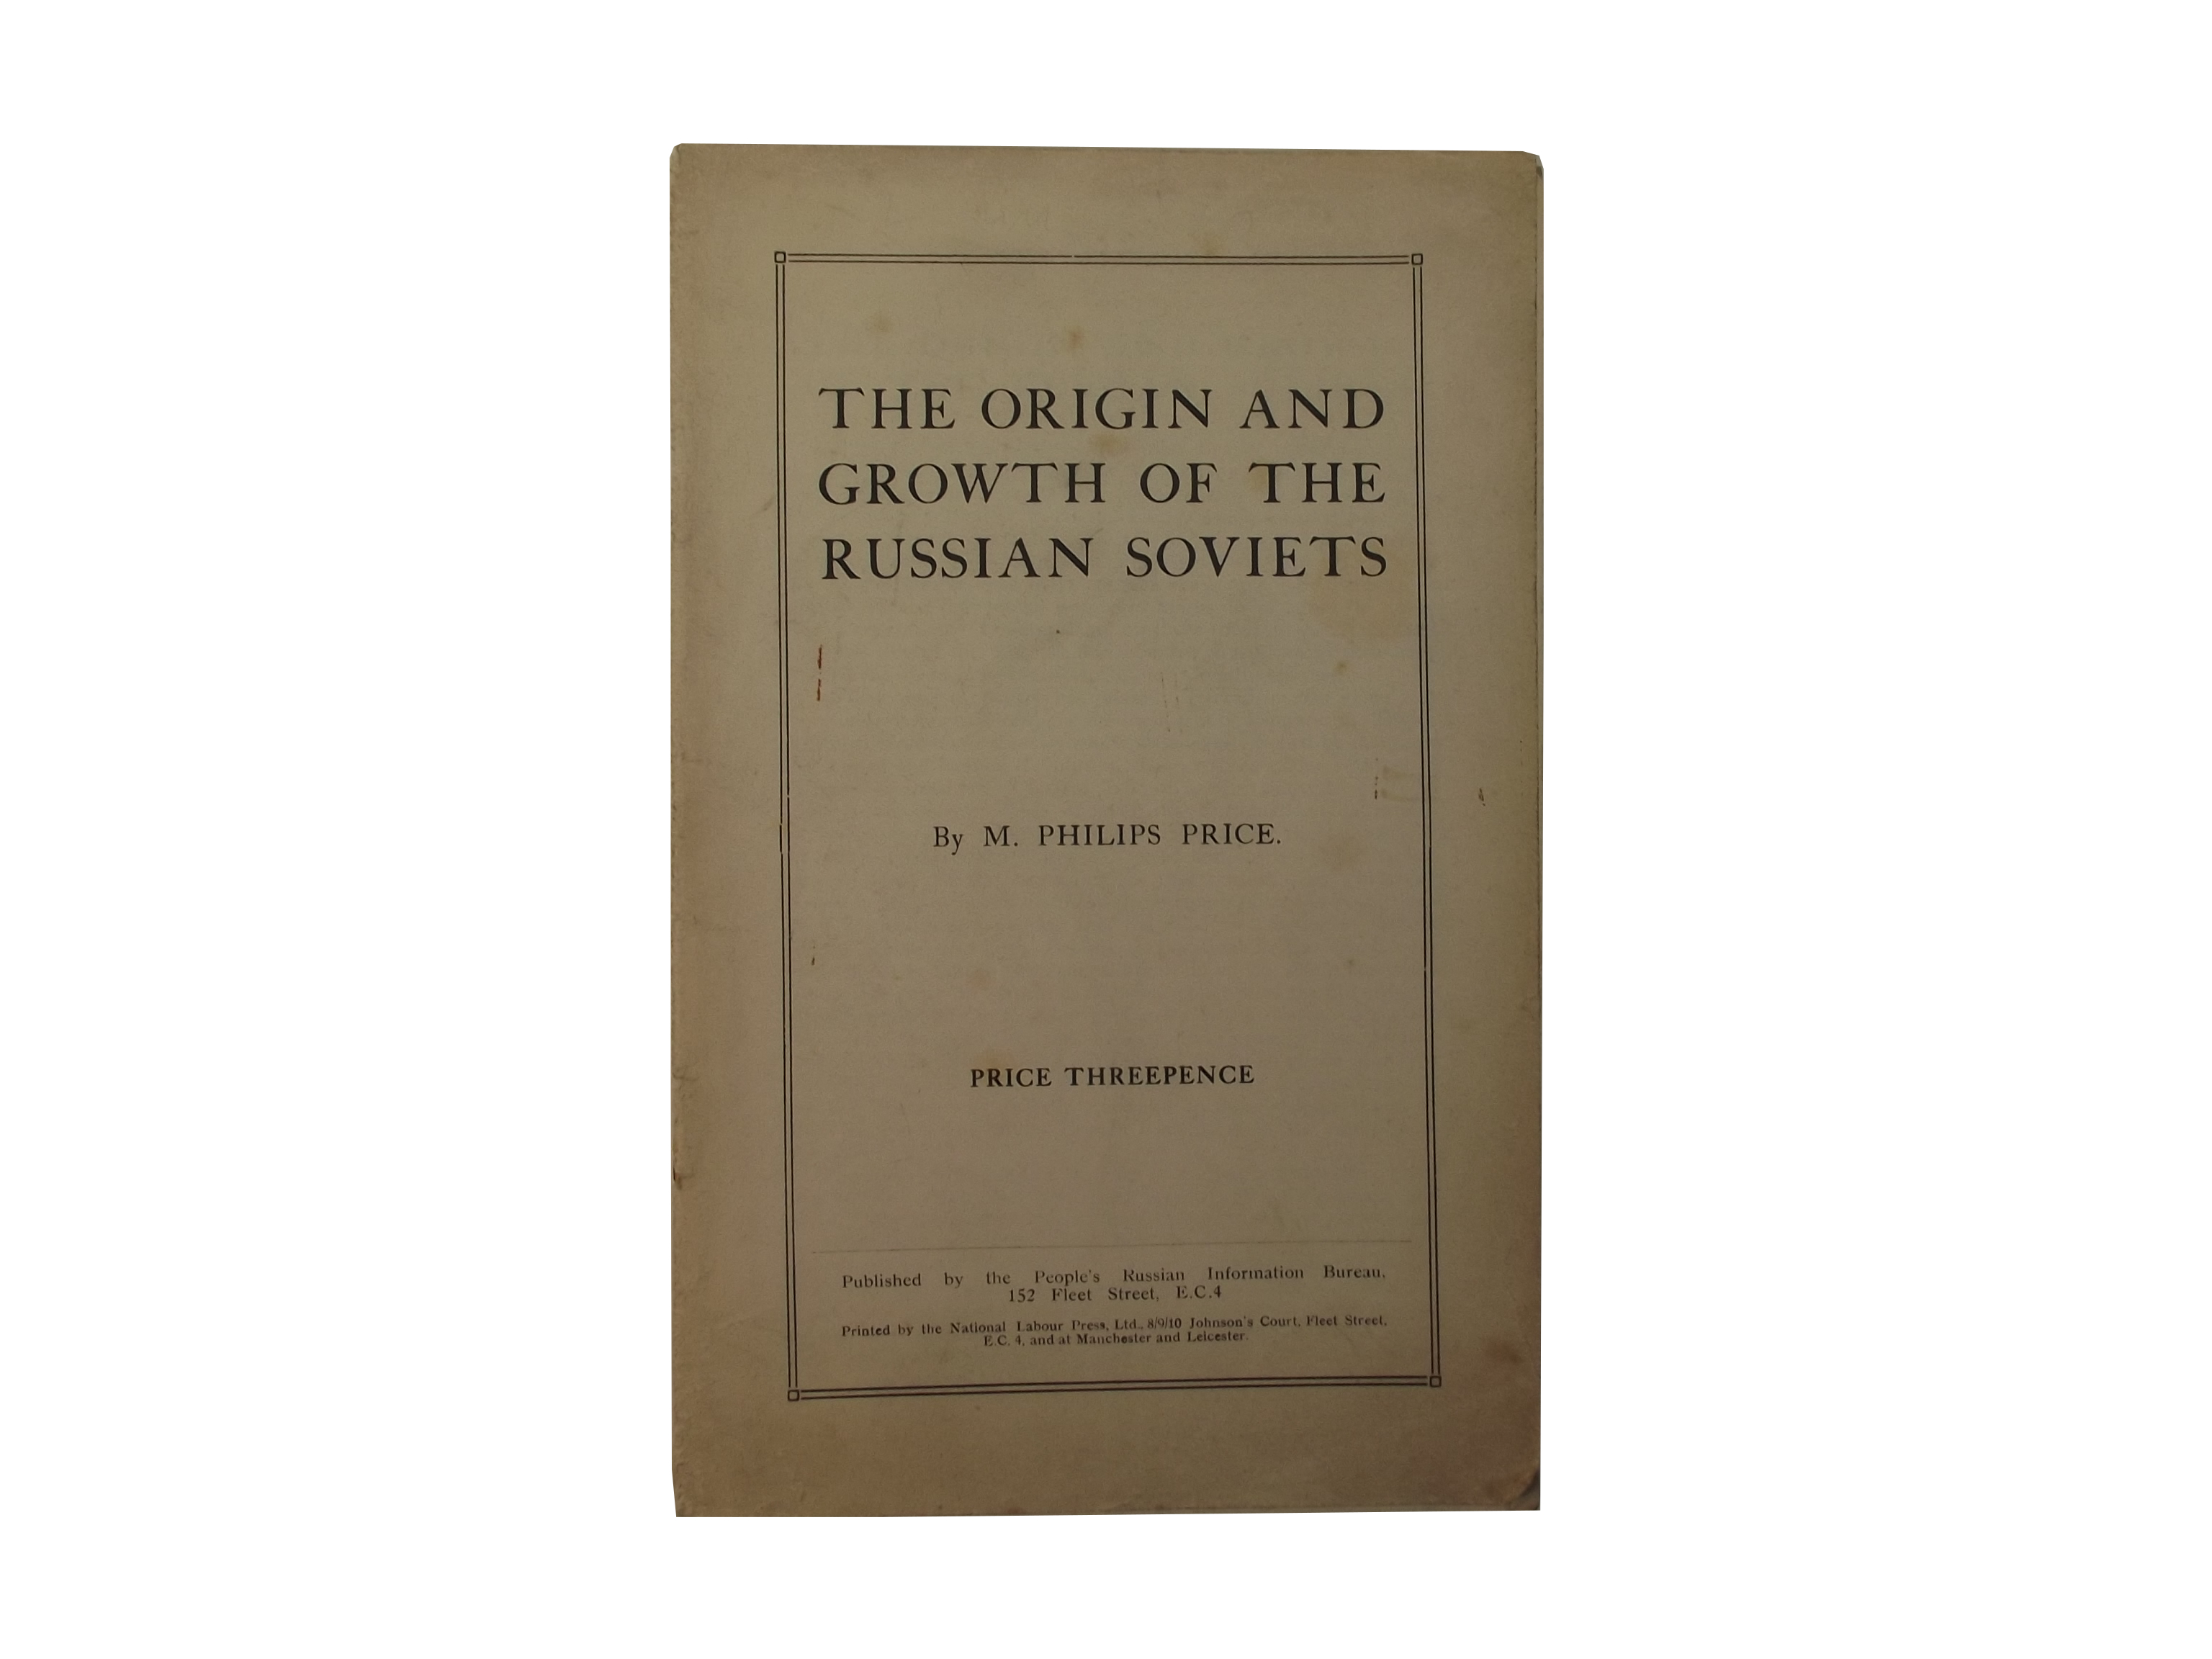 Origin and Growth of the Russian Soviets